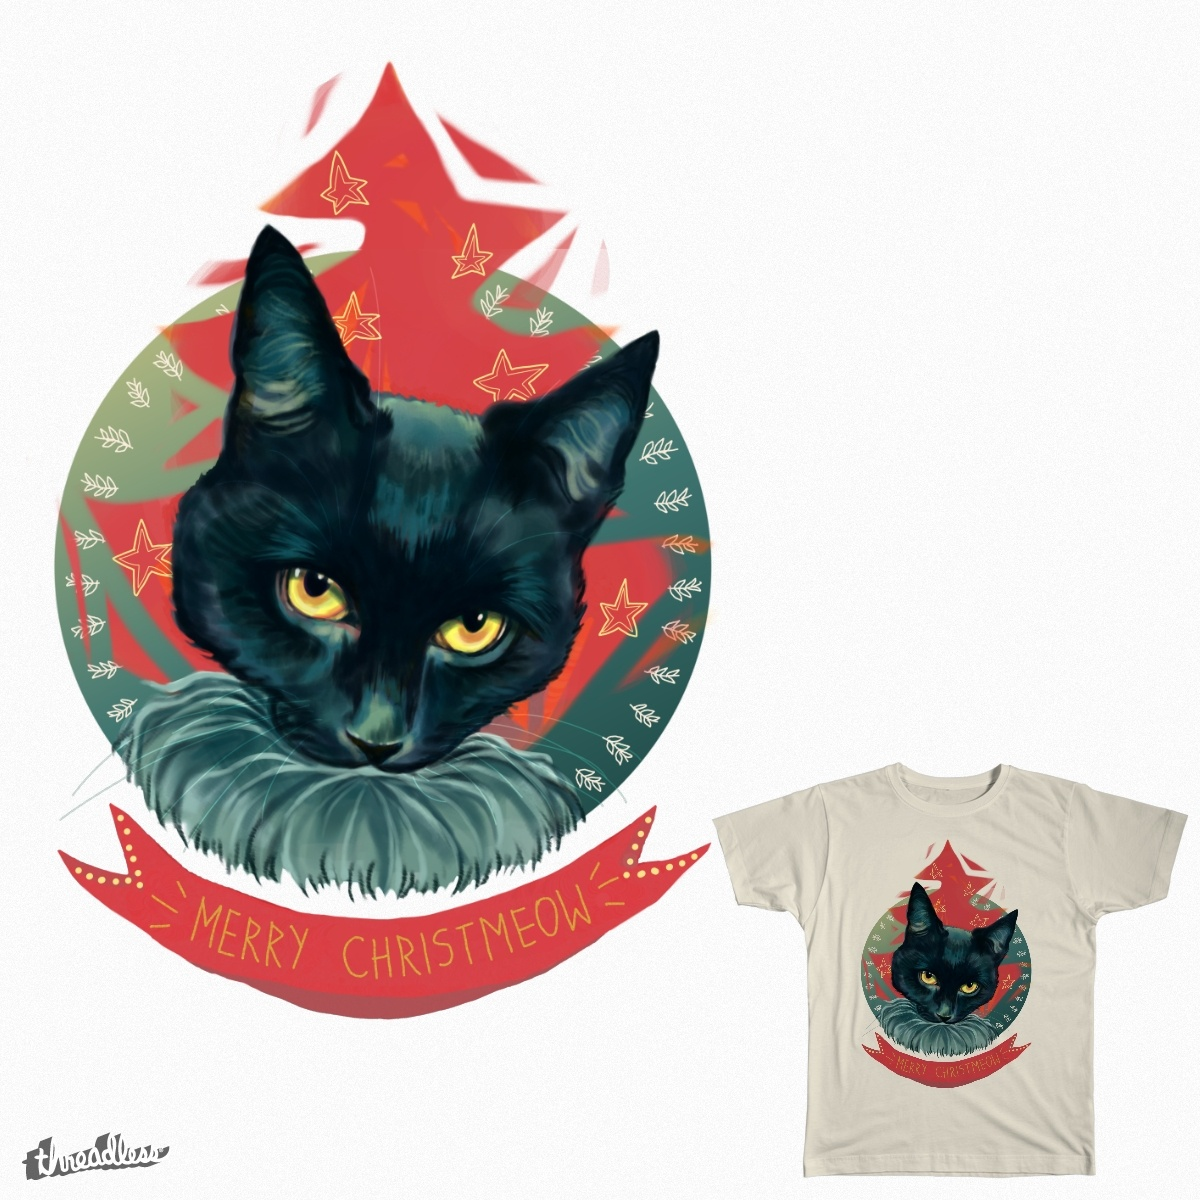 Merry Christmeow , a cool t-shirt design